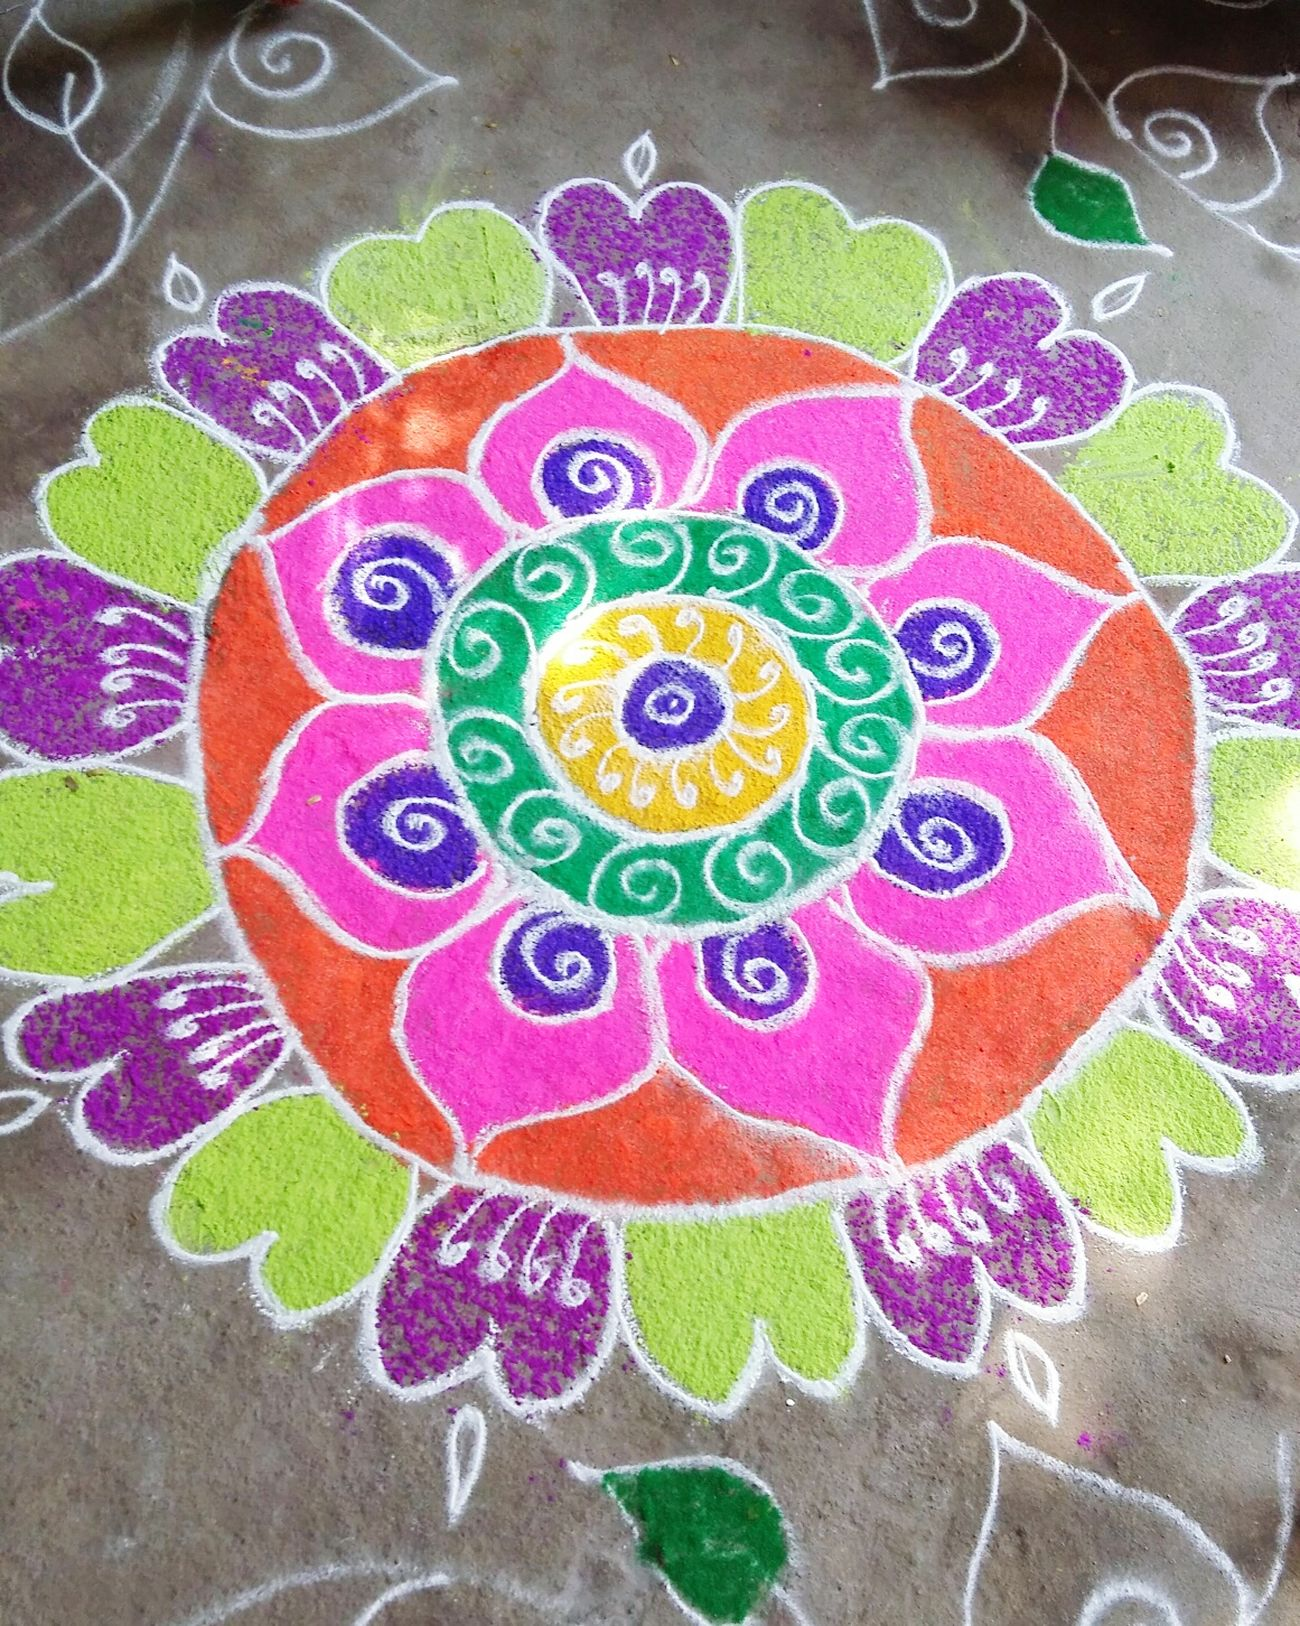 Festival around the cornor Sankranthi Colorful Colorful Rangoli. Hyderabad,India